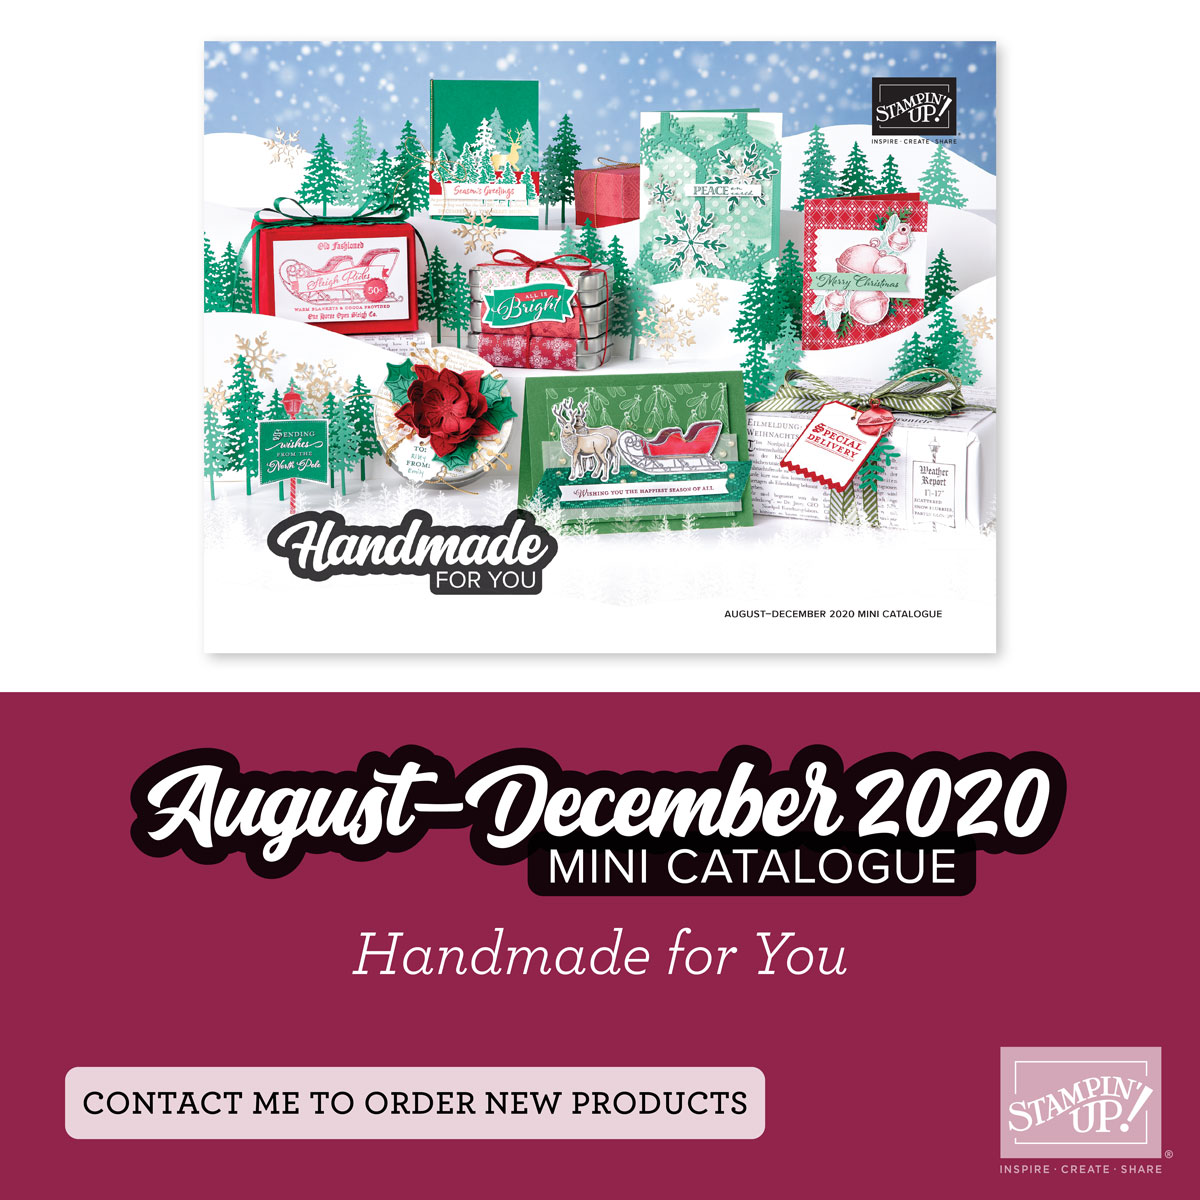 August-December Mini Catalogue